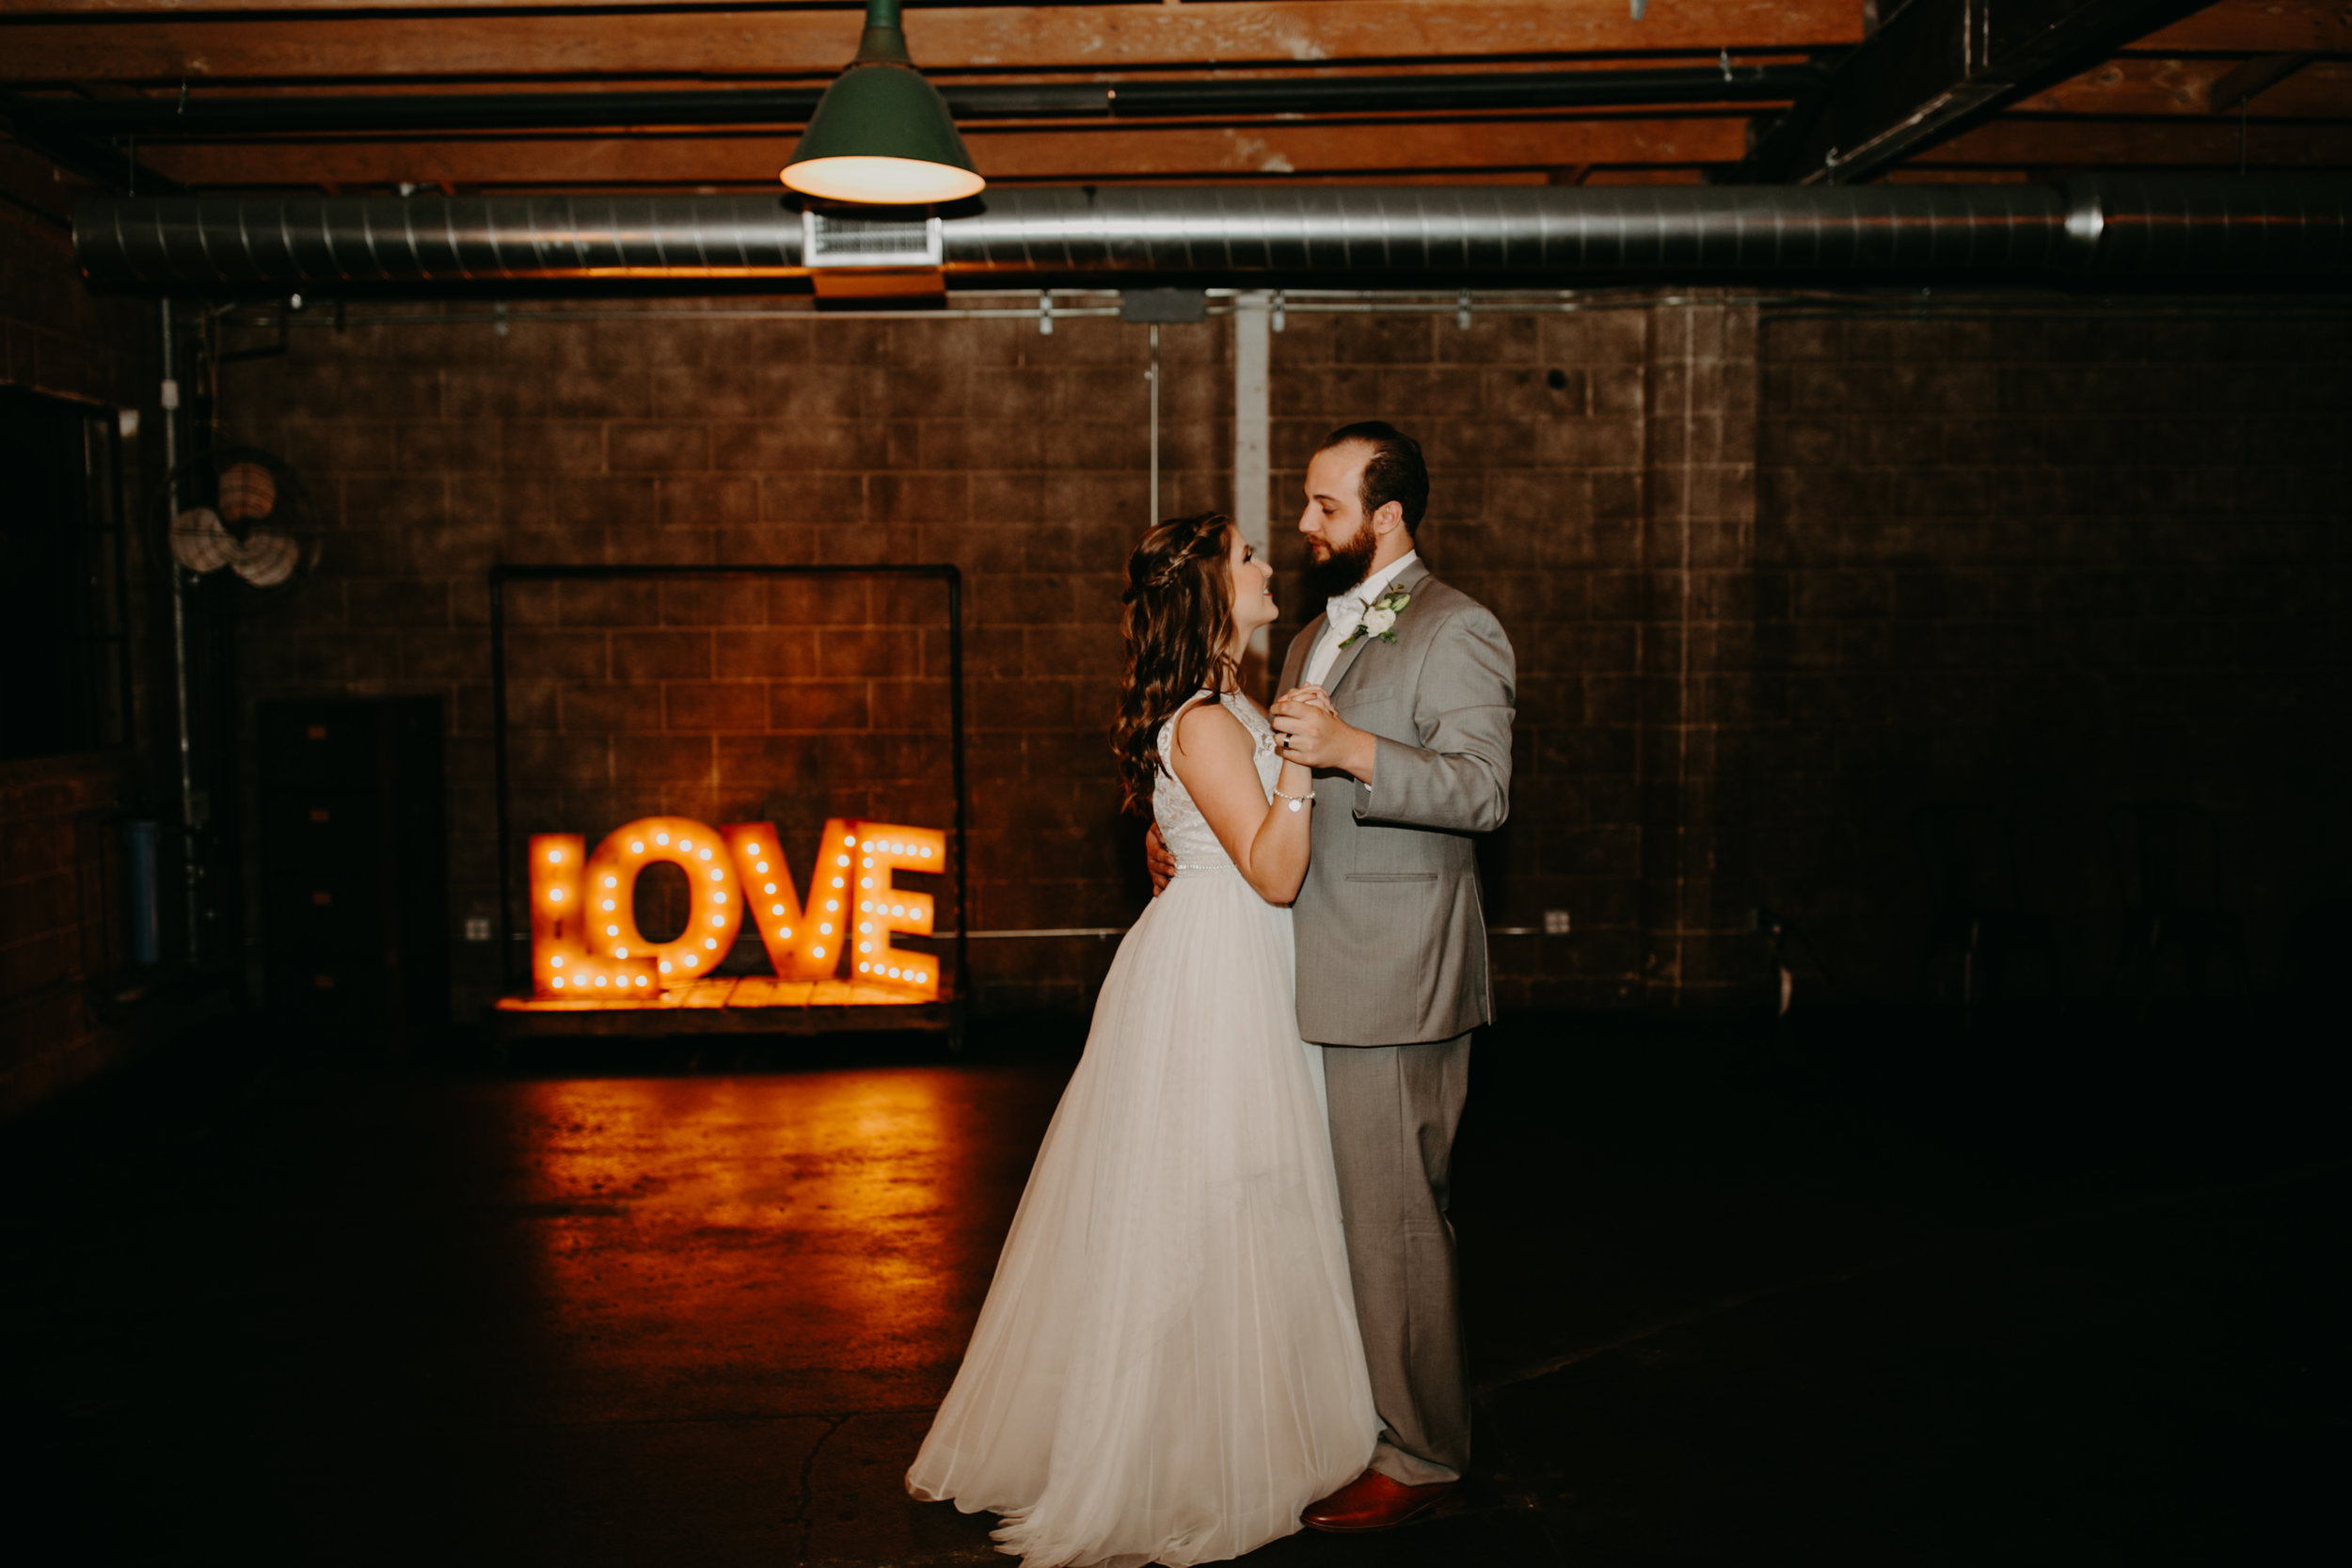 Smoky Hollow Studios Wedding Anne & Lewis Emily Magers Photography-739.jpg